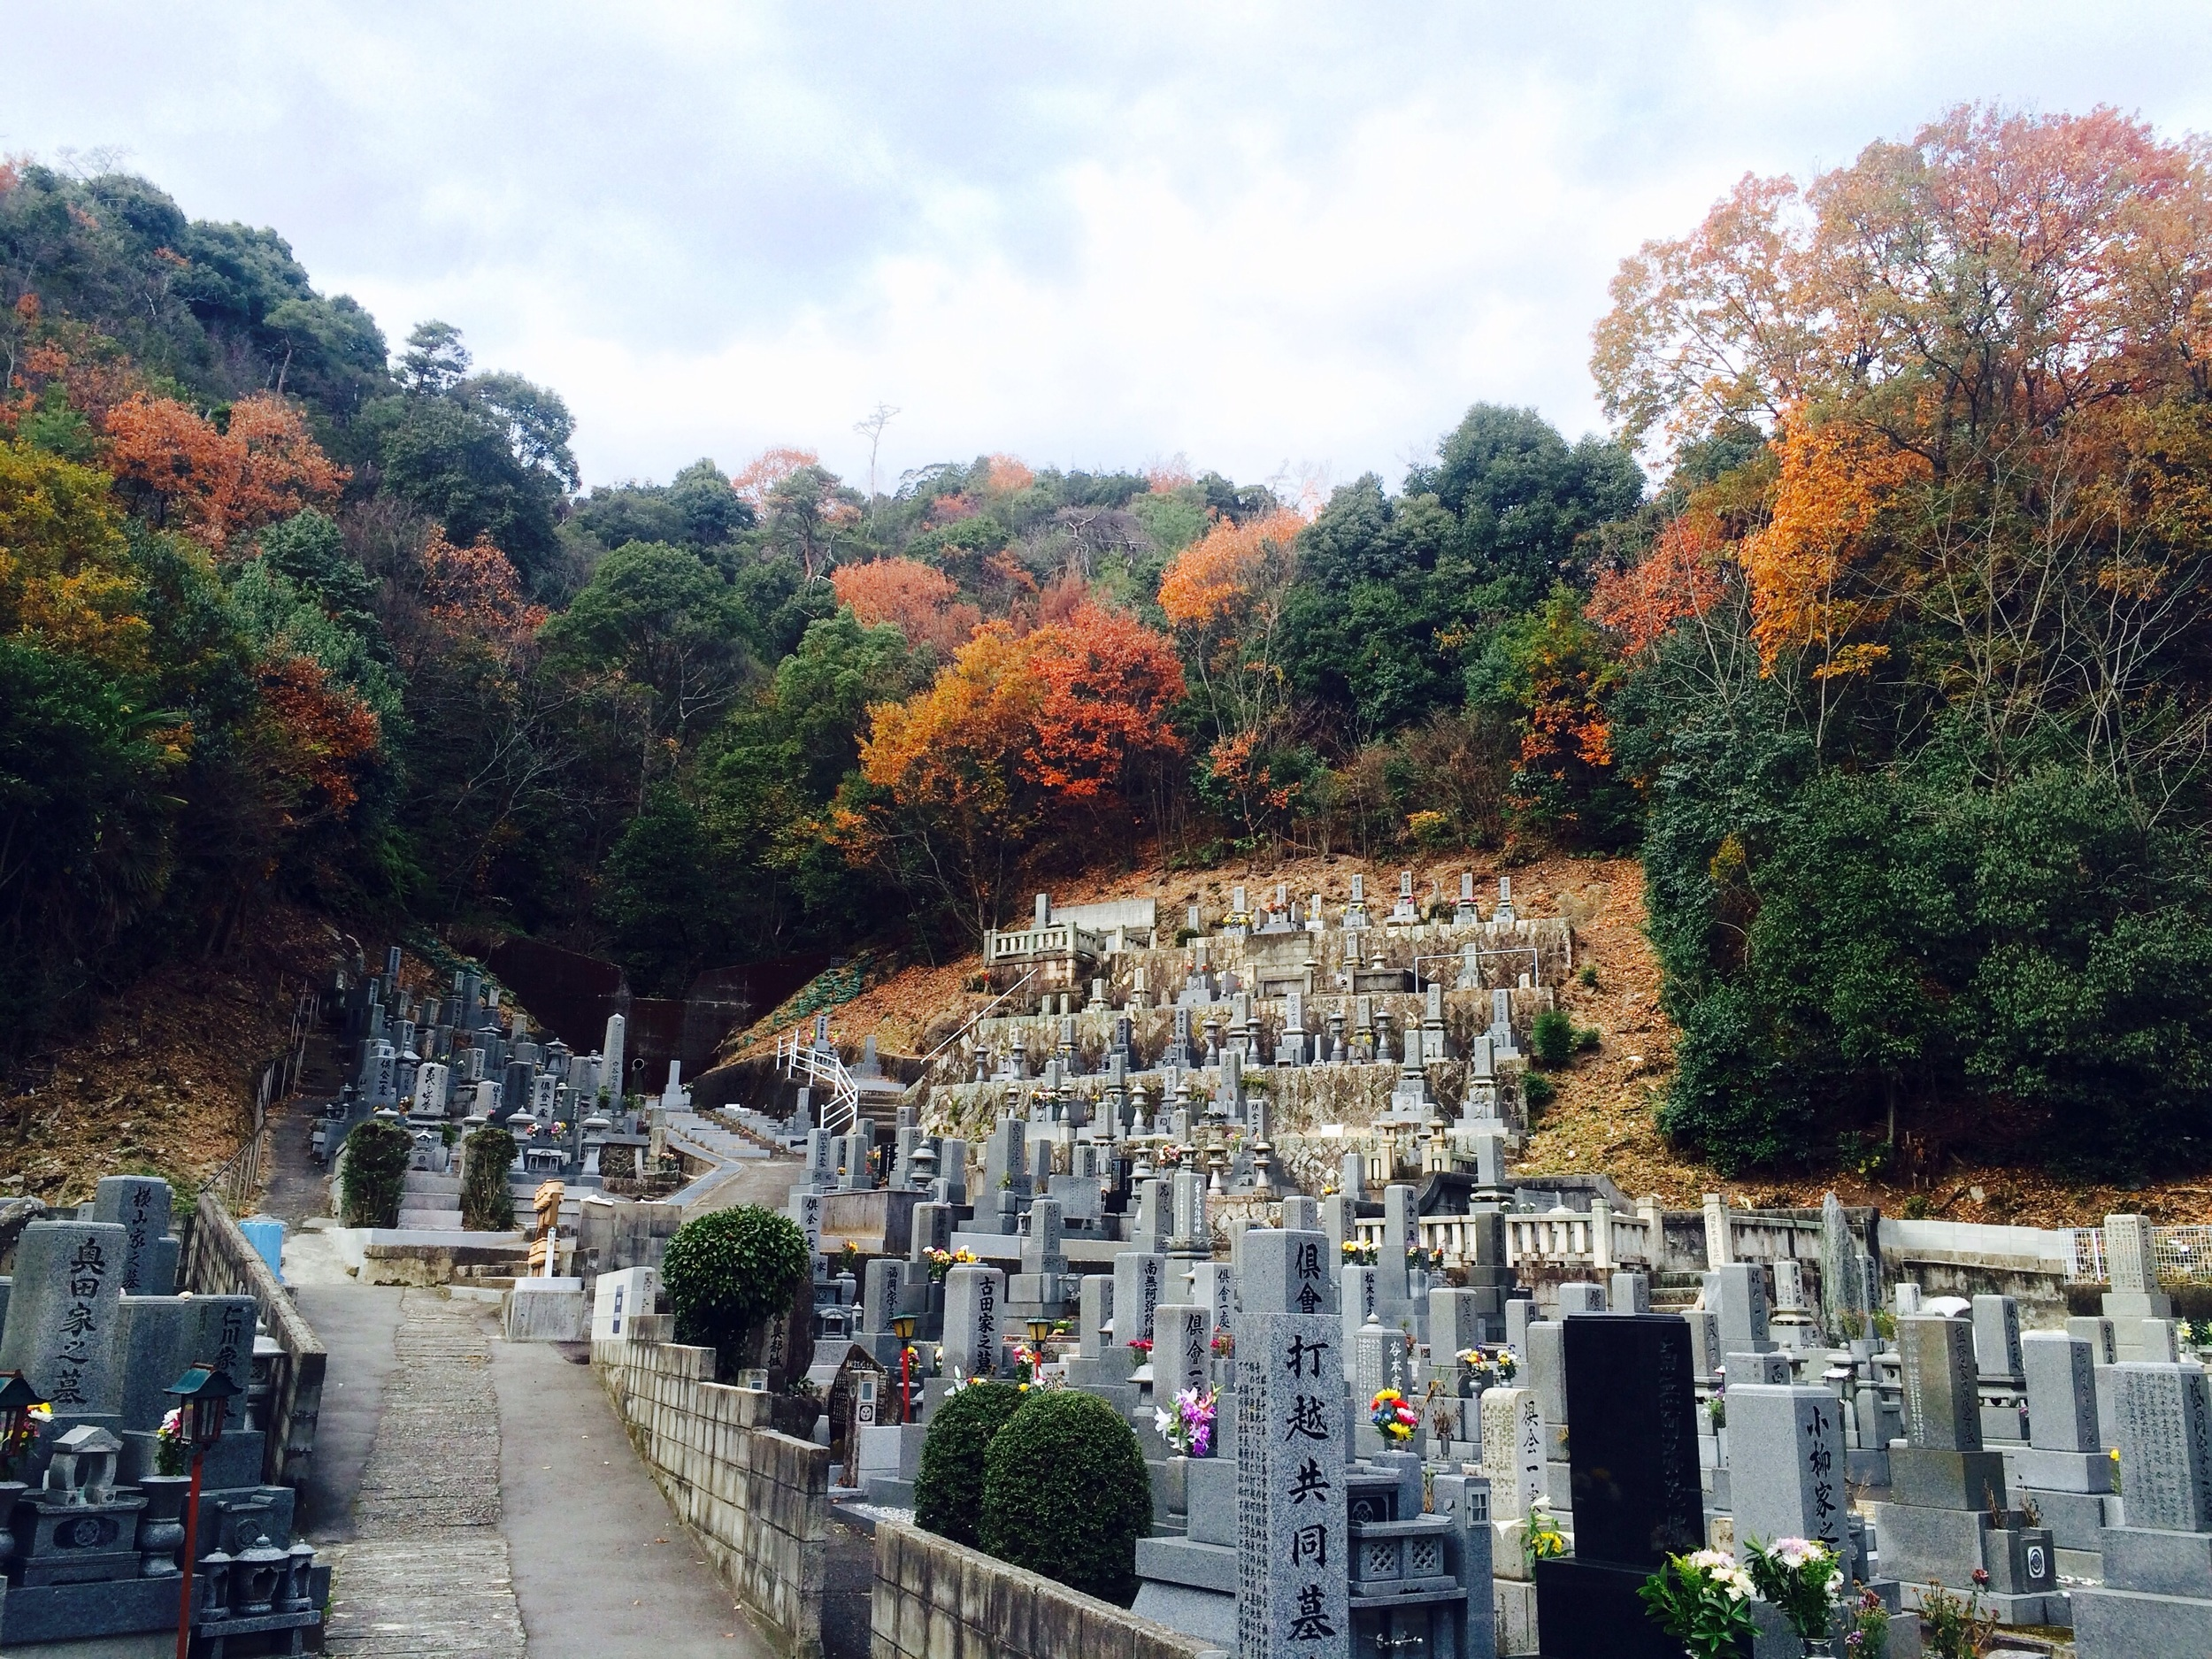 A typical neighborhood cemetery, this one in Kamakura, which is about an hour from Tokyo